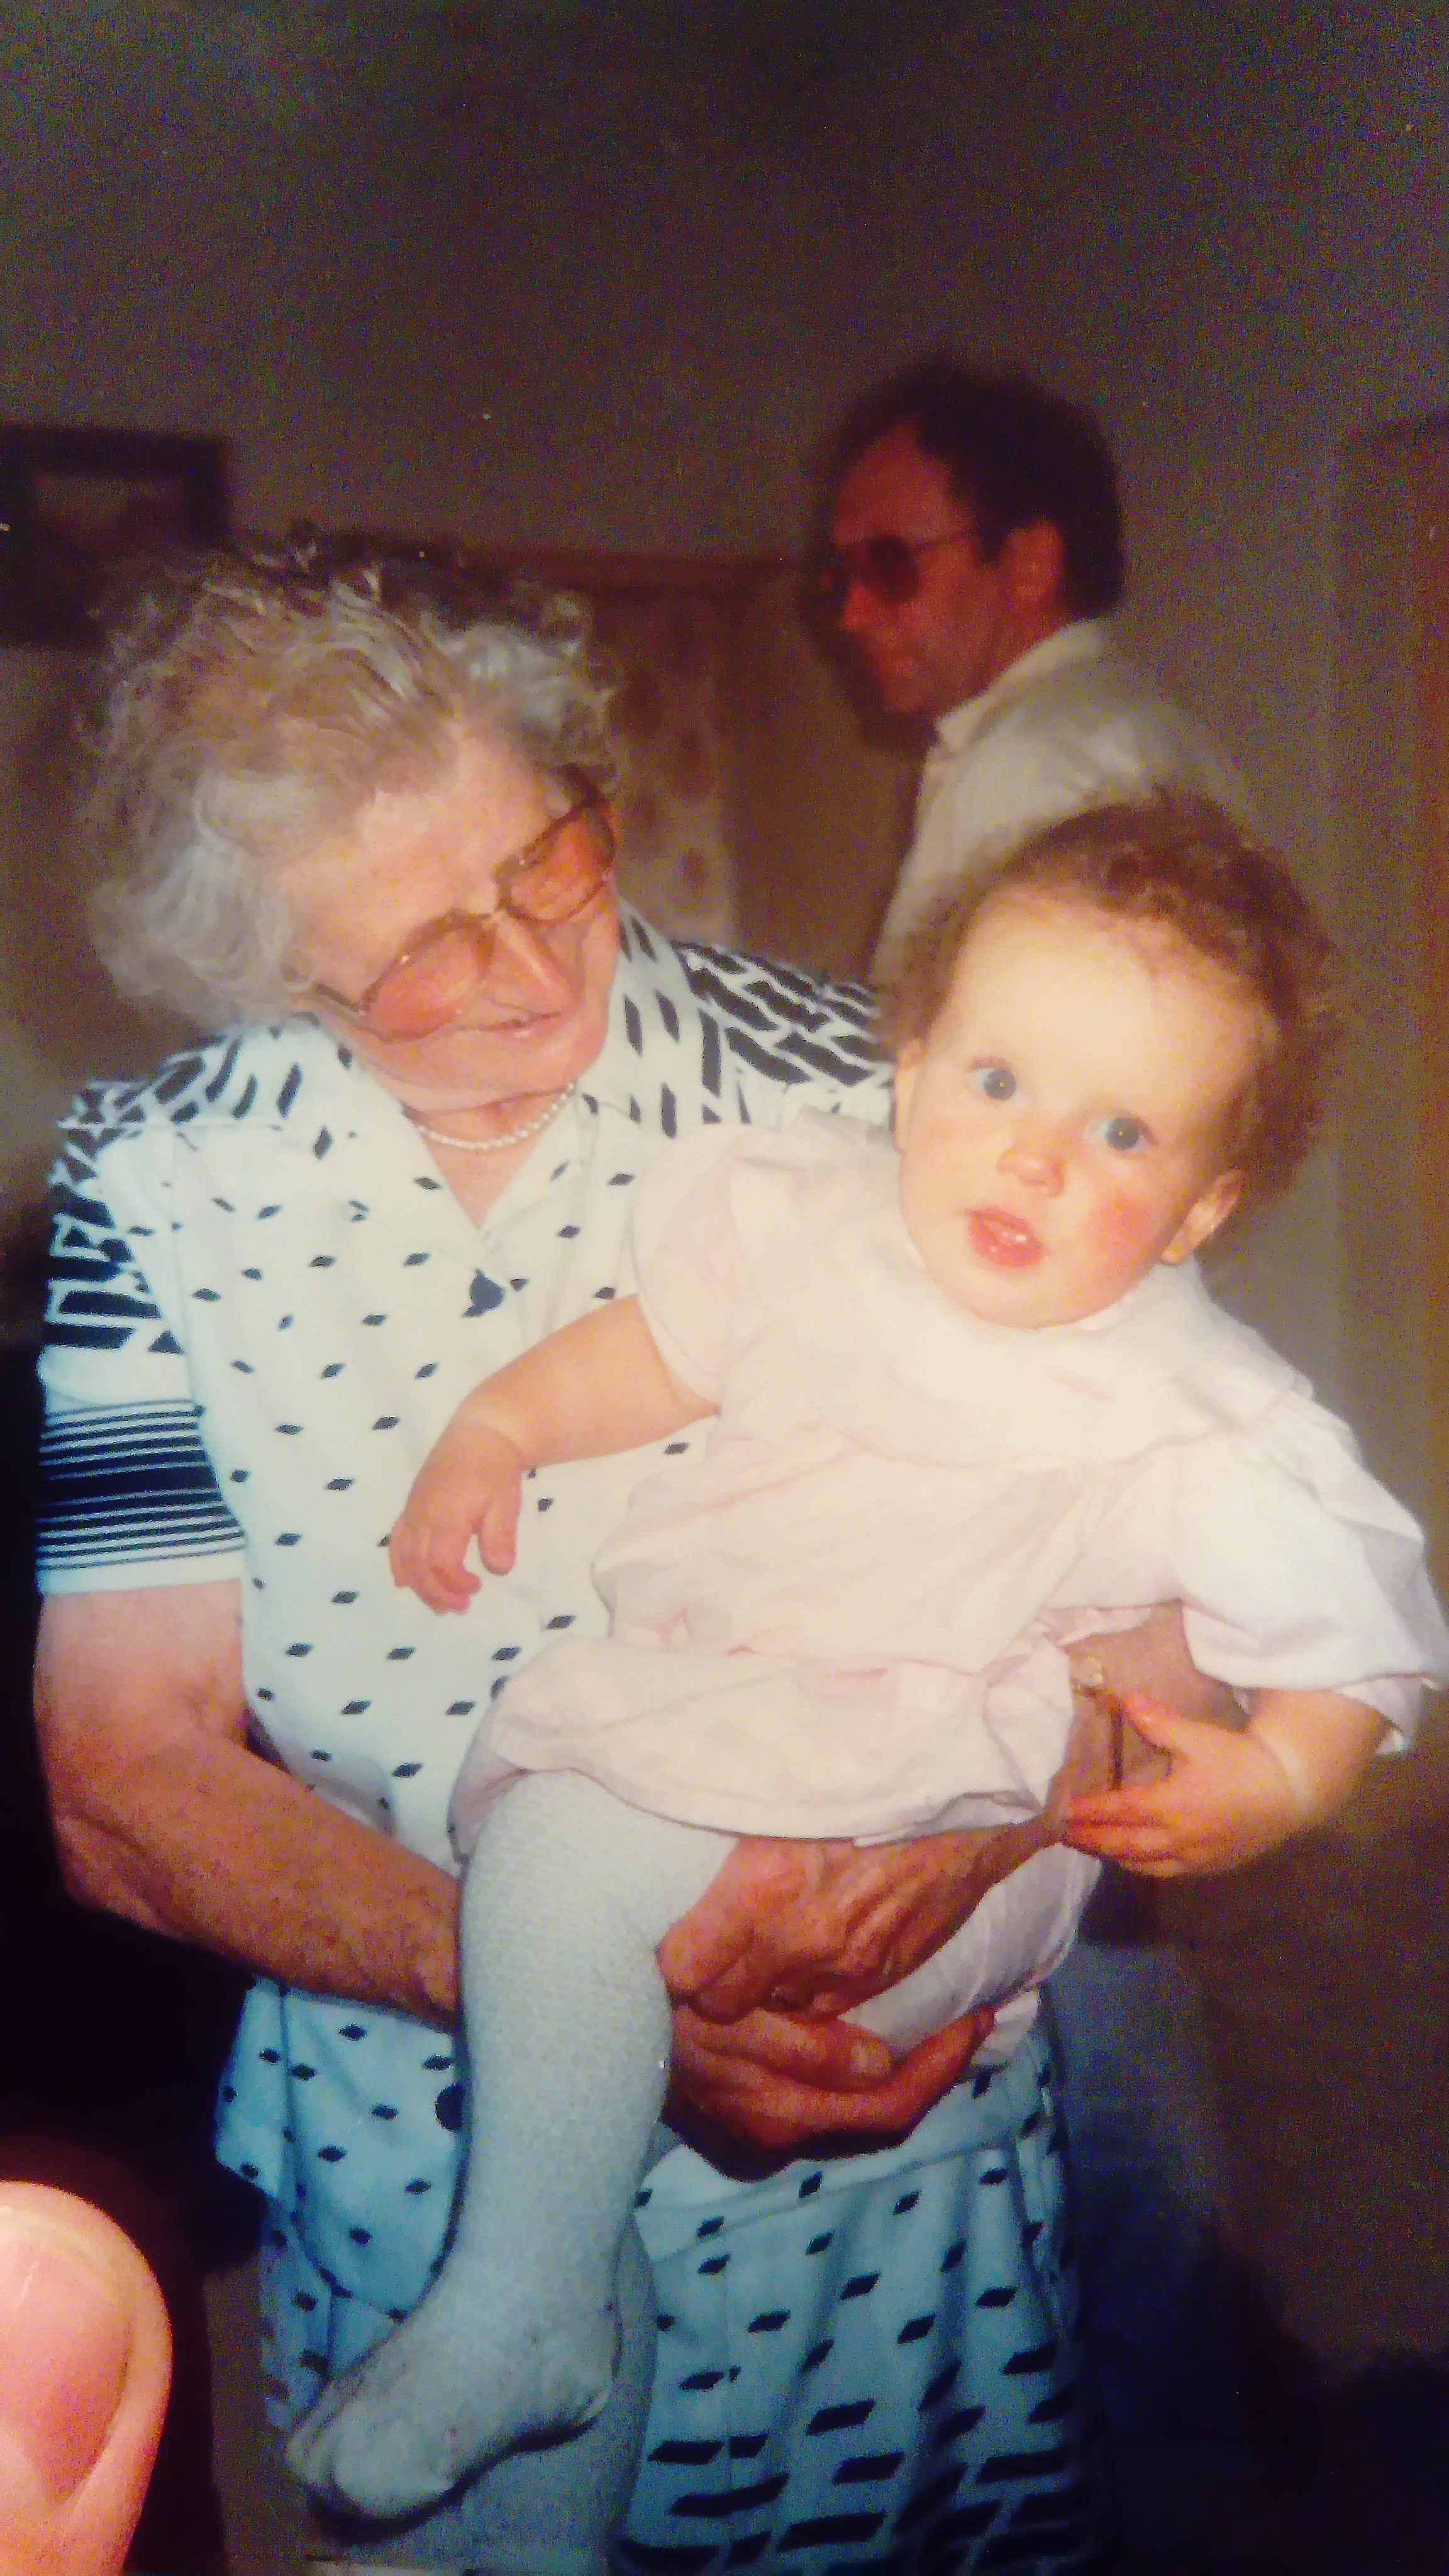 Jax as a baby with her gran